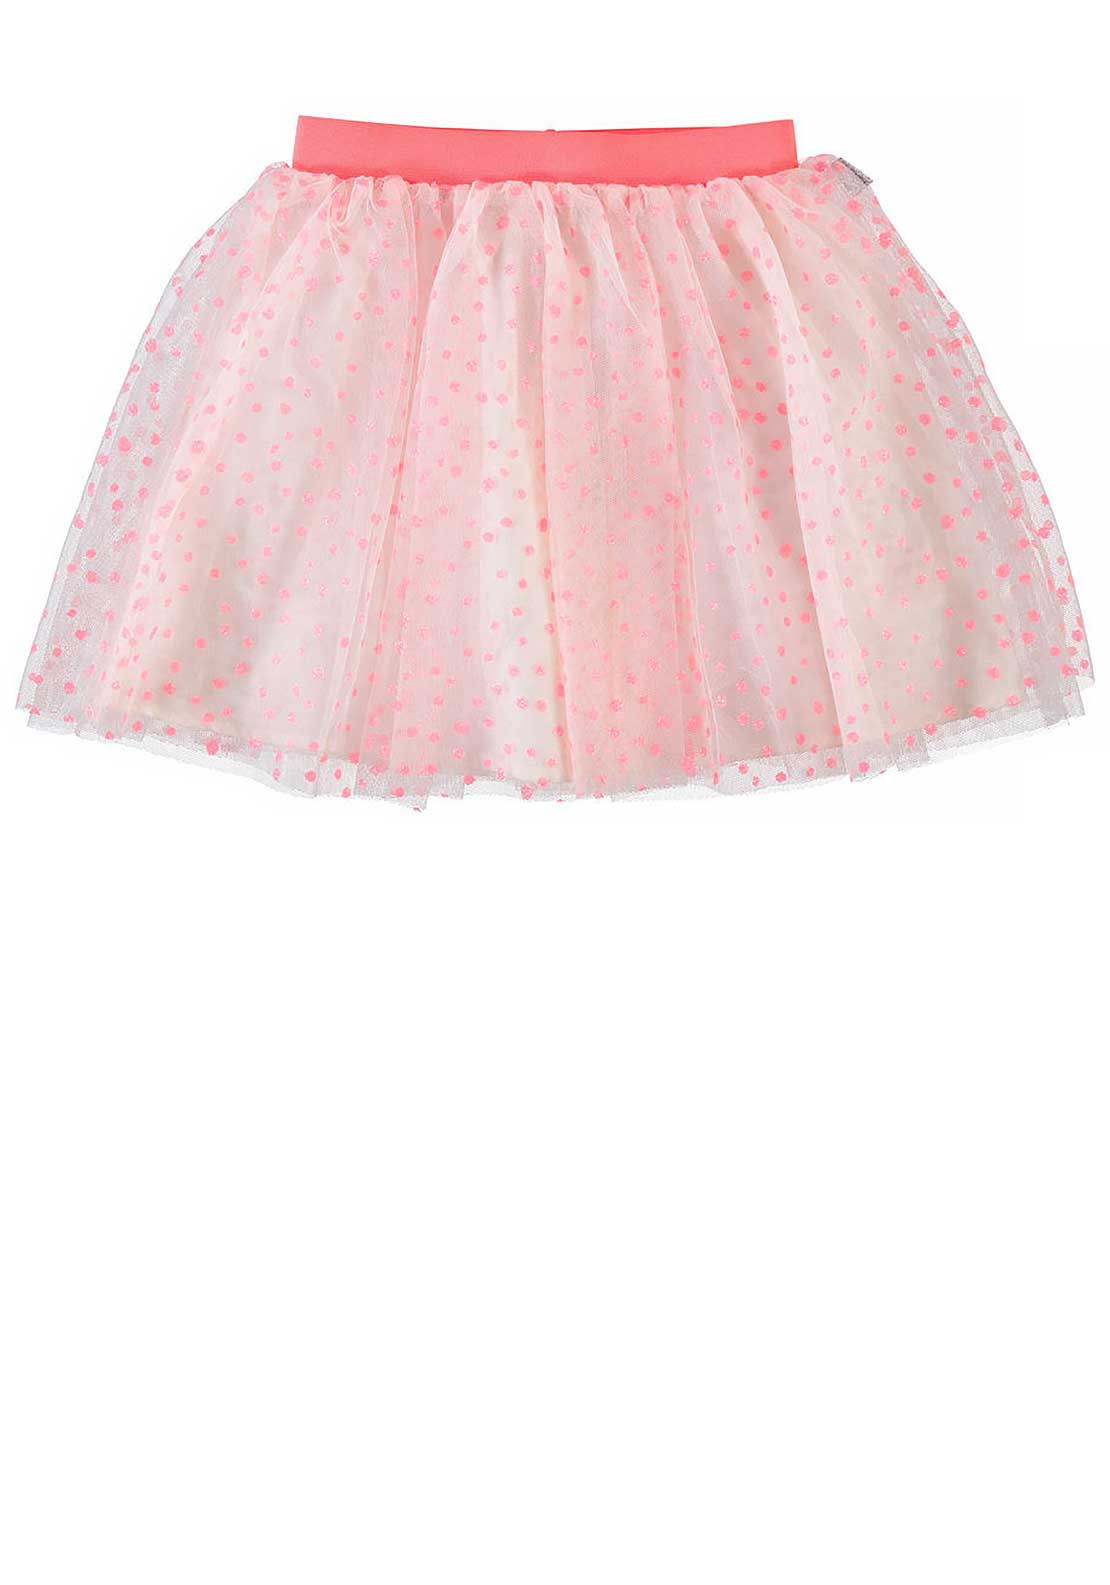 Name It Girls Glitter Tulle Skirt, Neon Coral